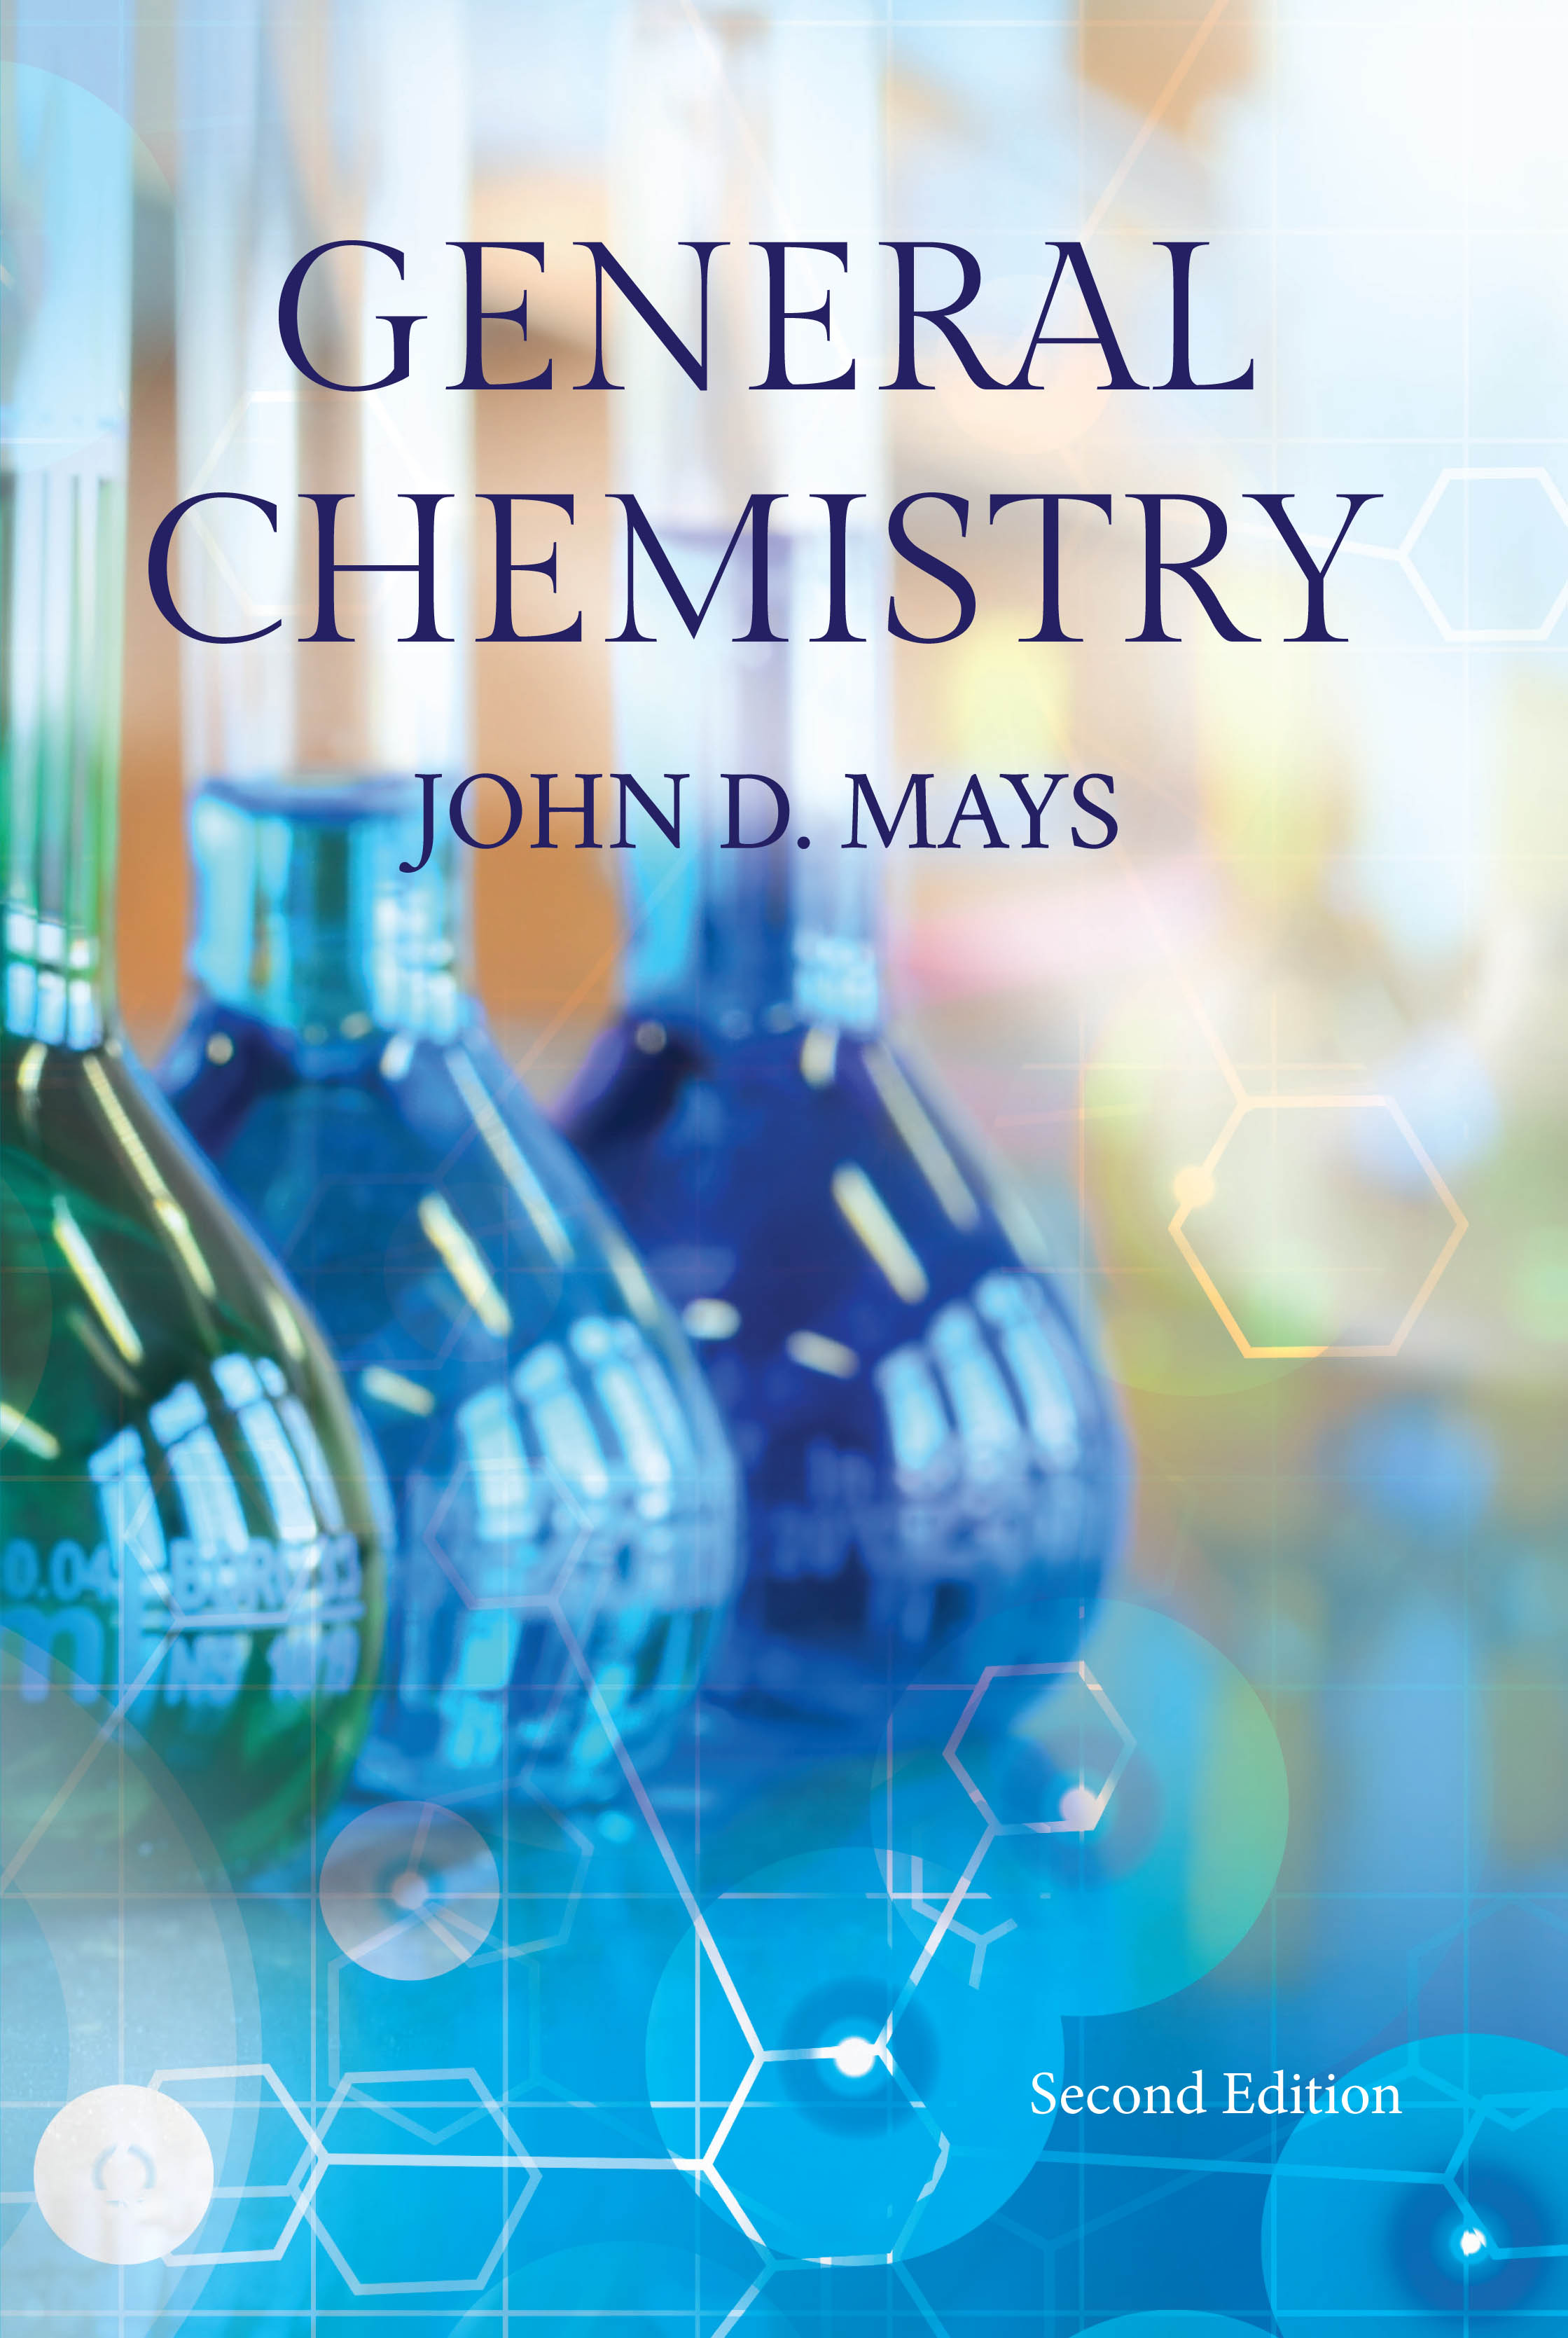 General Chemistry 2nd Edition (30-day license)